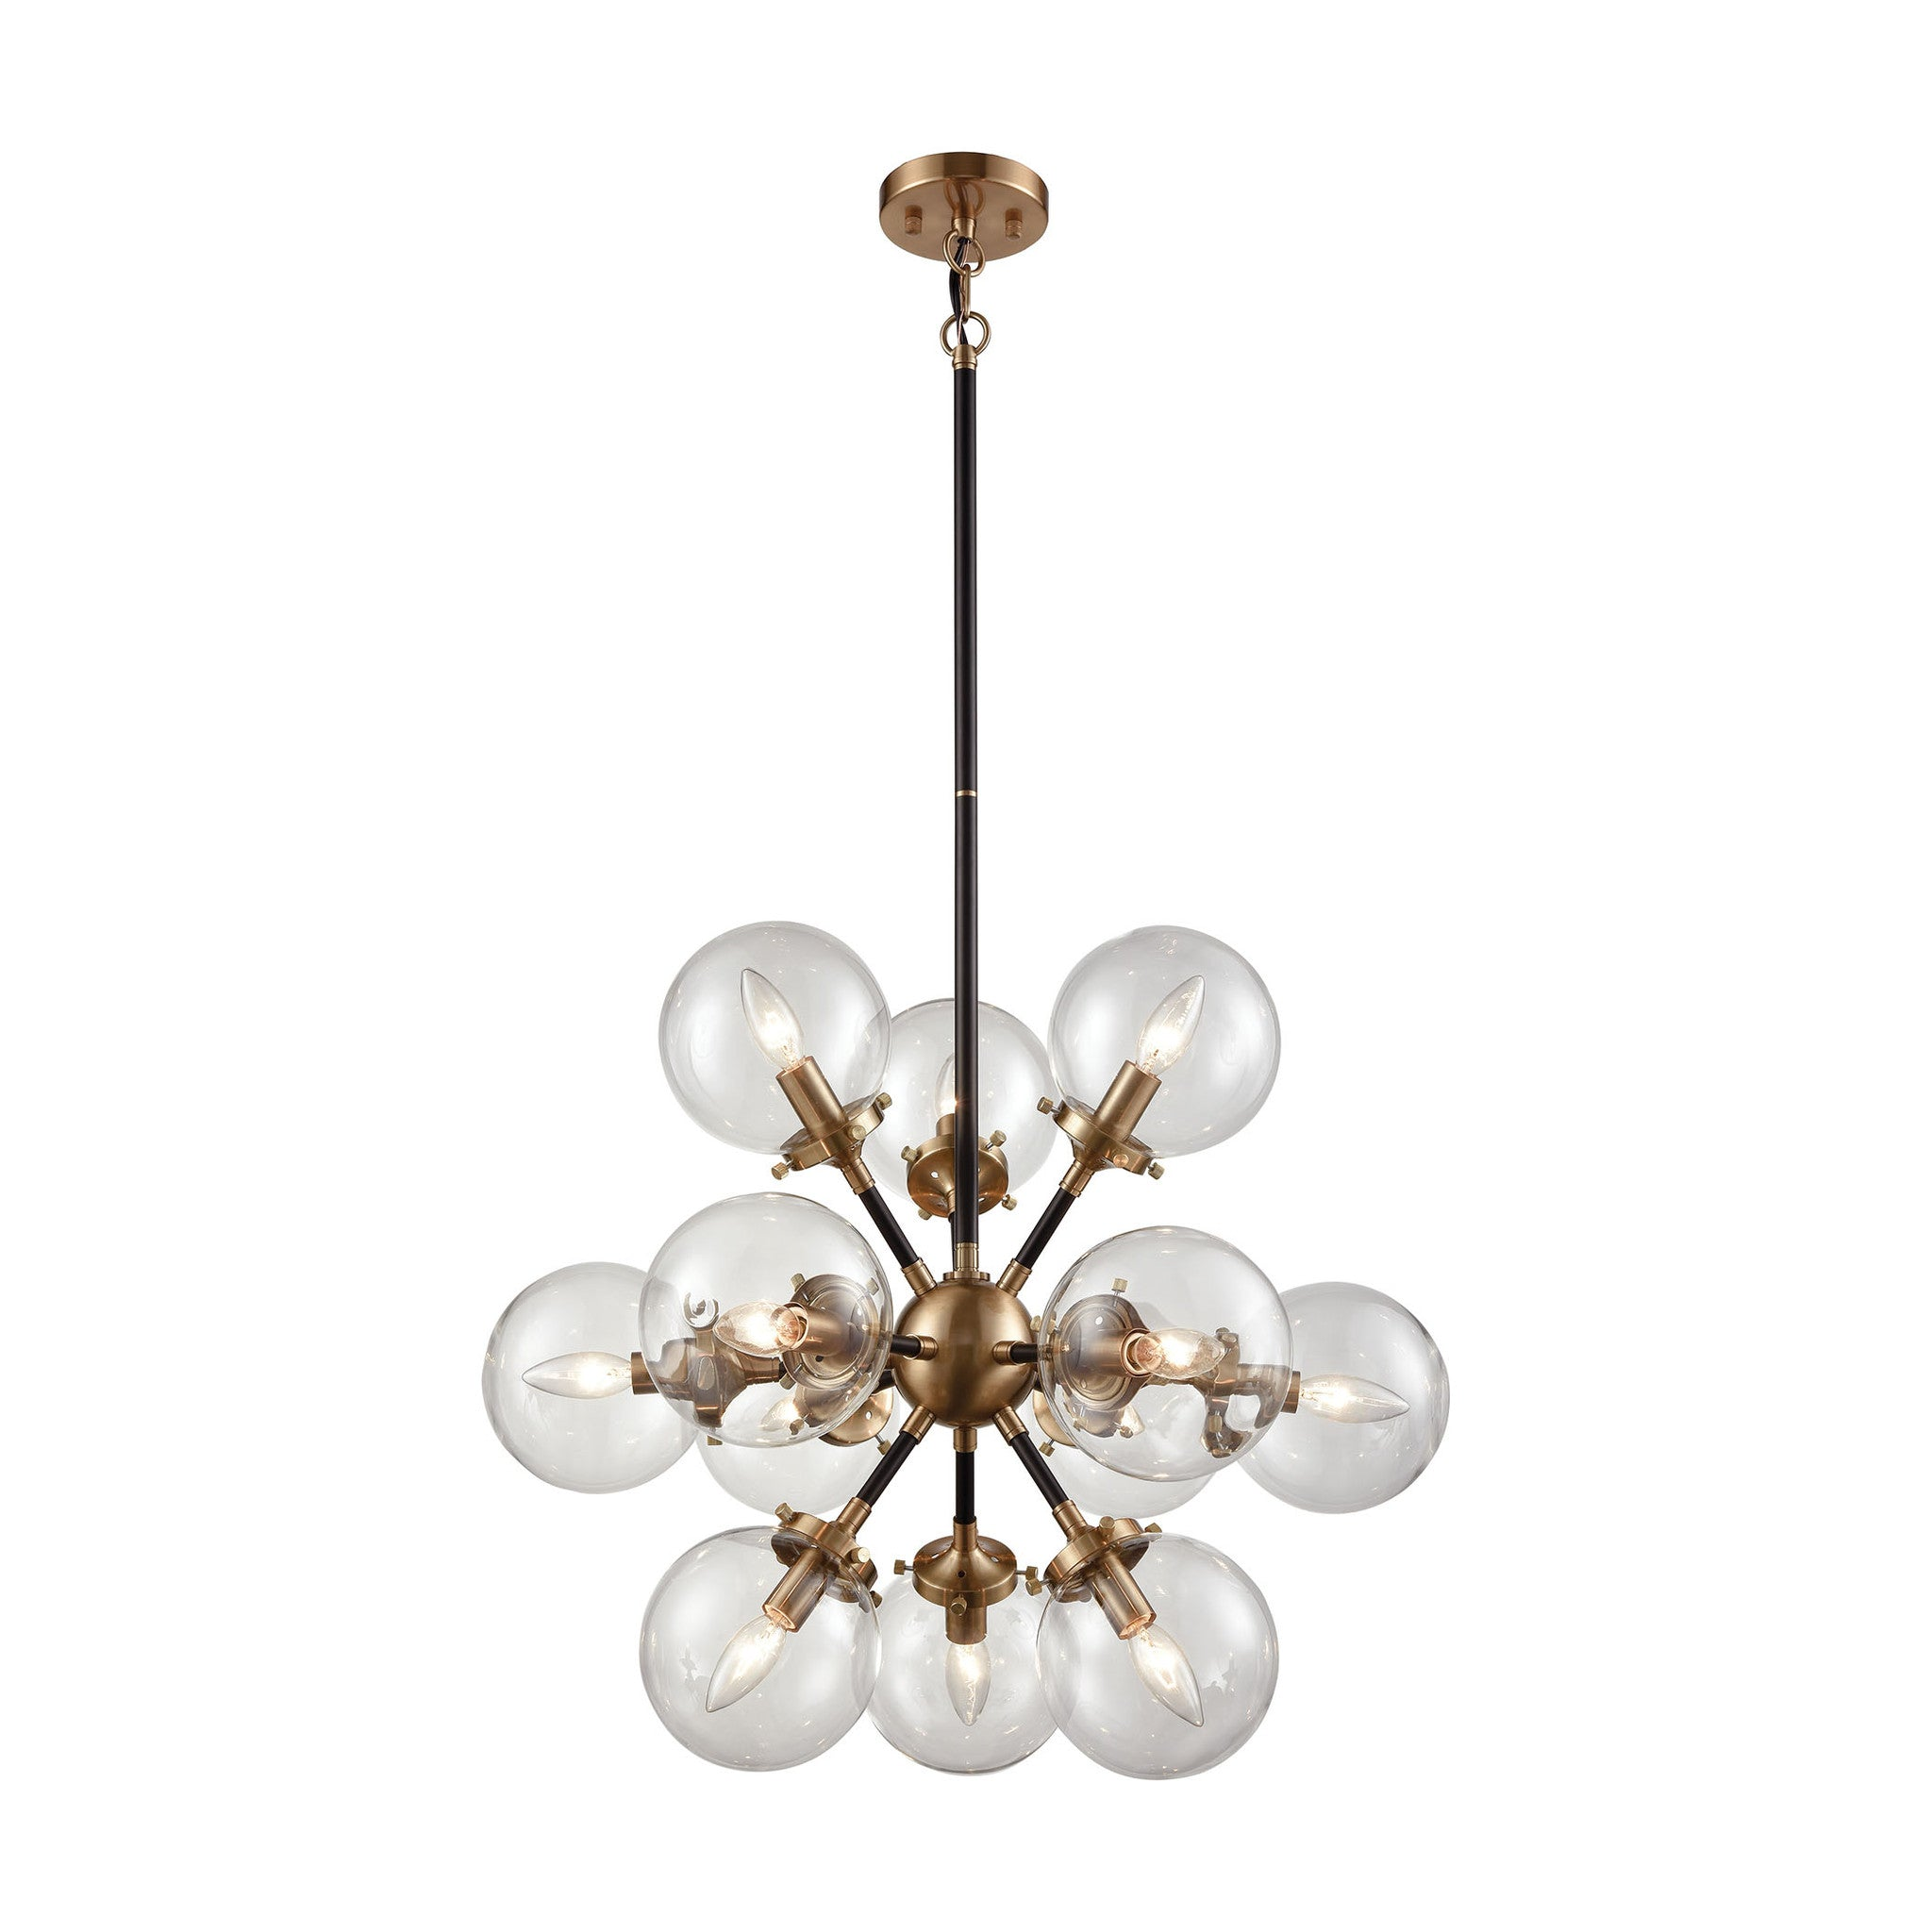 Mid-Century Modern 12 Light Boudreaux Chandelier in Matte Black and Antique Gold with Clear Glass Globe Shades 14434/12